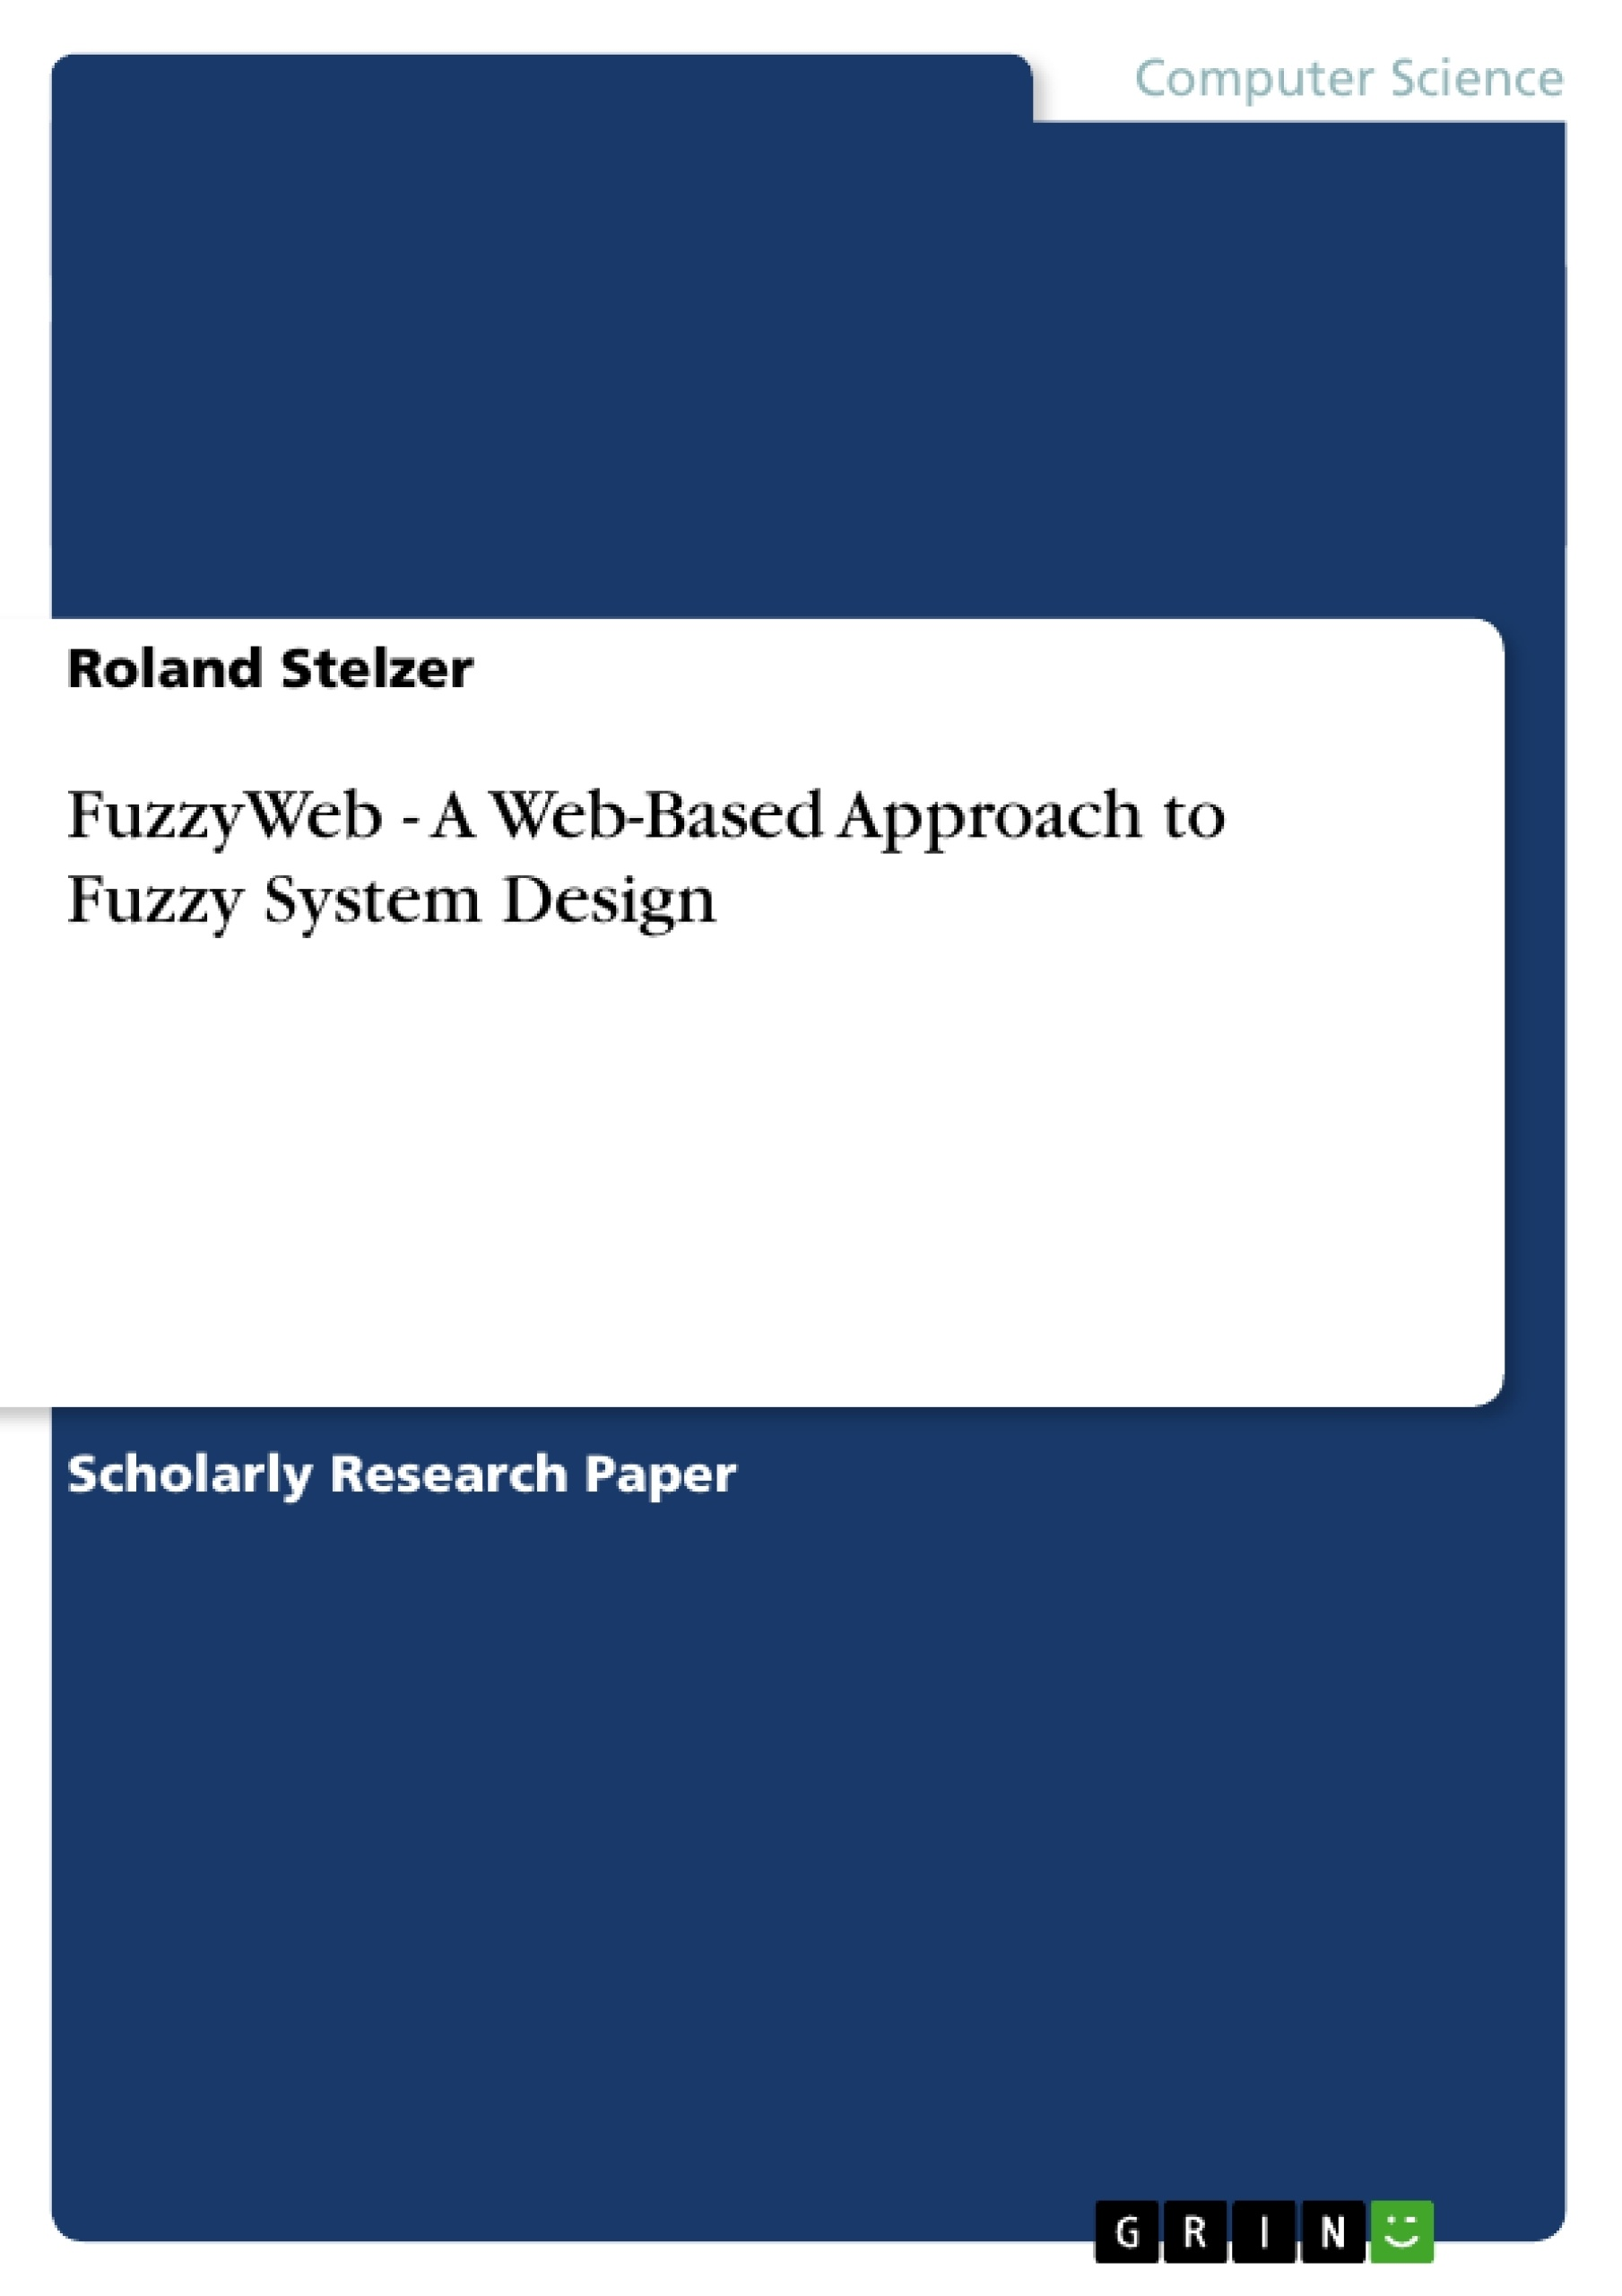 Title: FuzzyWeb - A Web-Based Approach to Fuzzy System Design